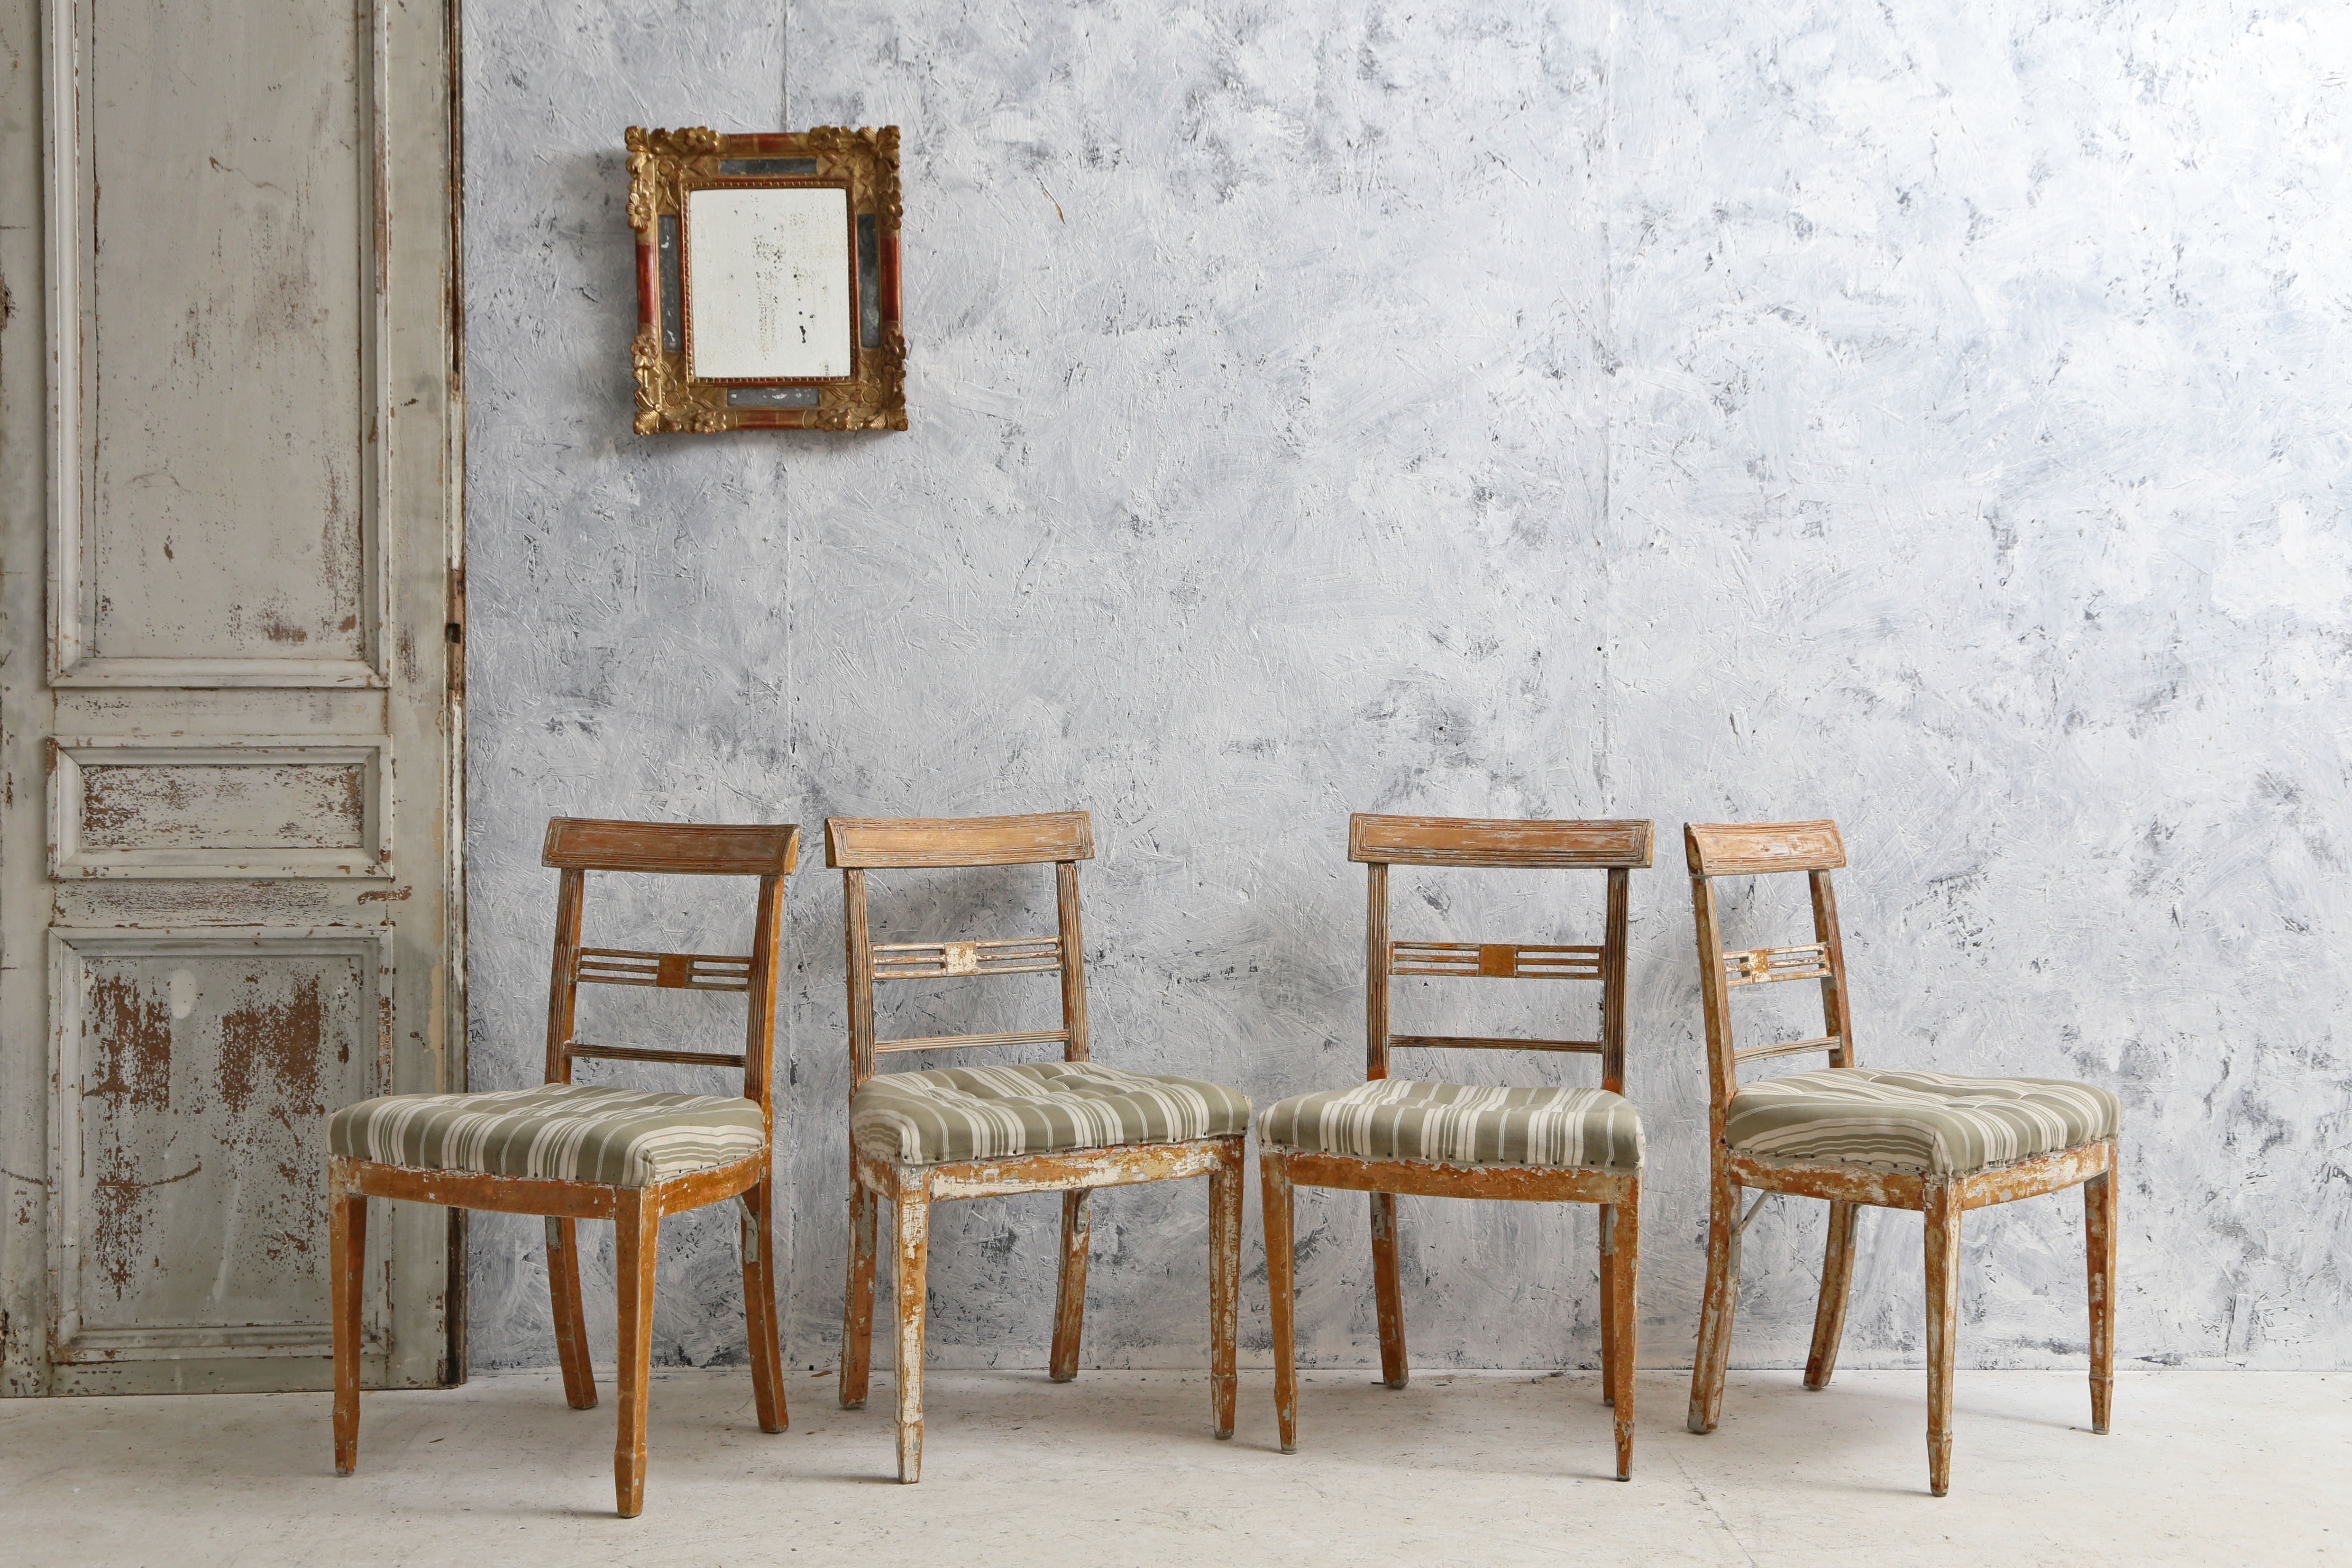 Antiques News & Fairs - The Bath Decorative Antiques Fair - 5-8 March 2020